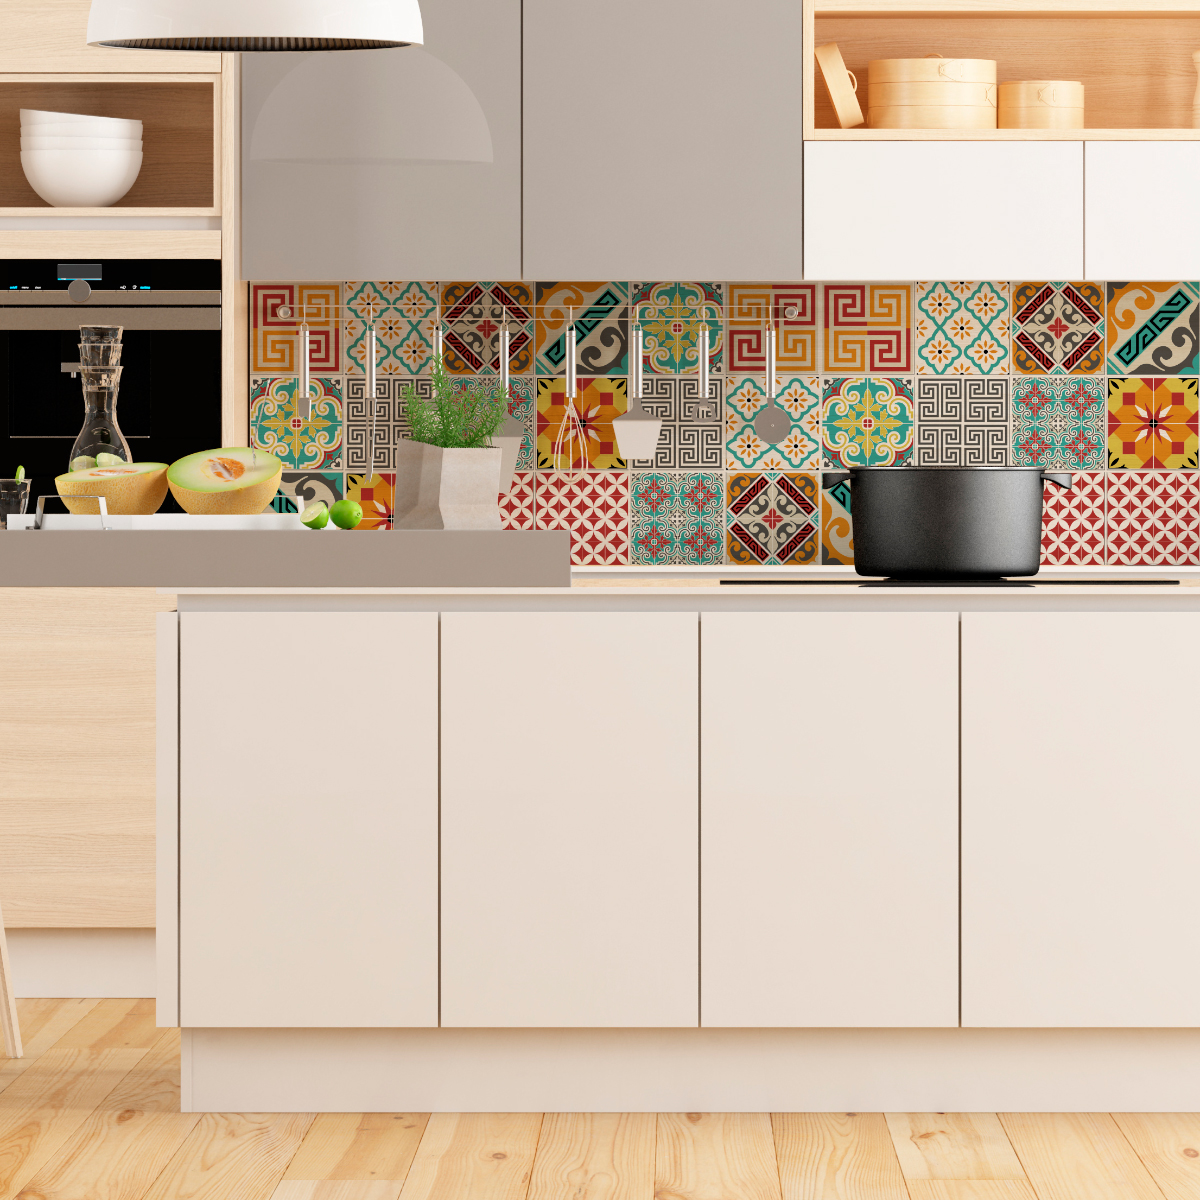 9 stickers carreaux de ciment azulejos violetta cuisine for Stickers carreaux de ciment cuisine